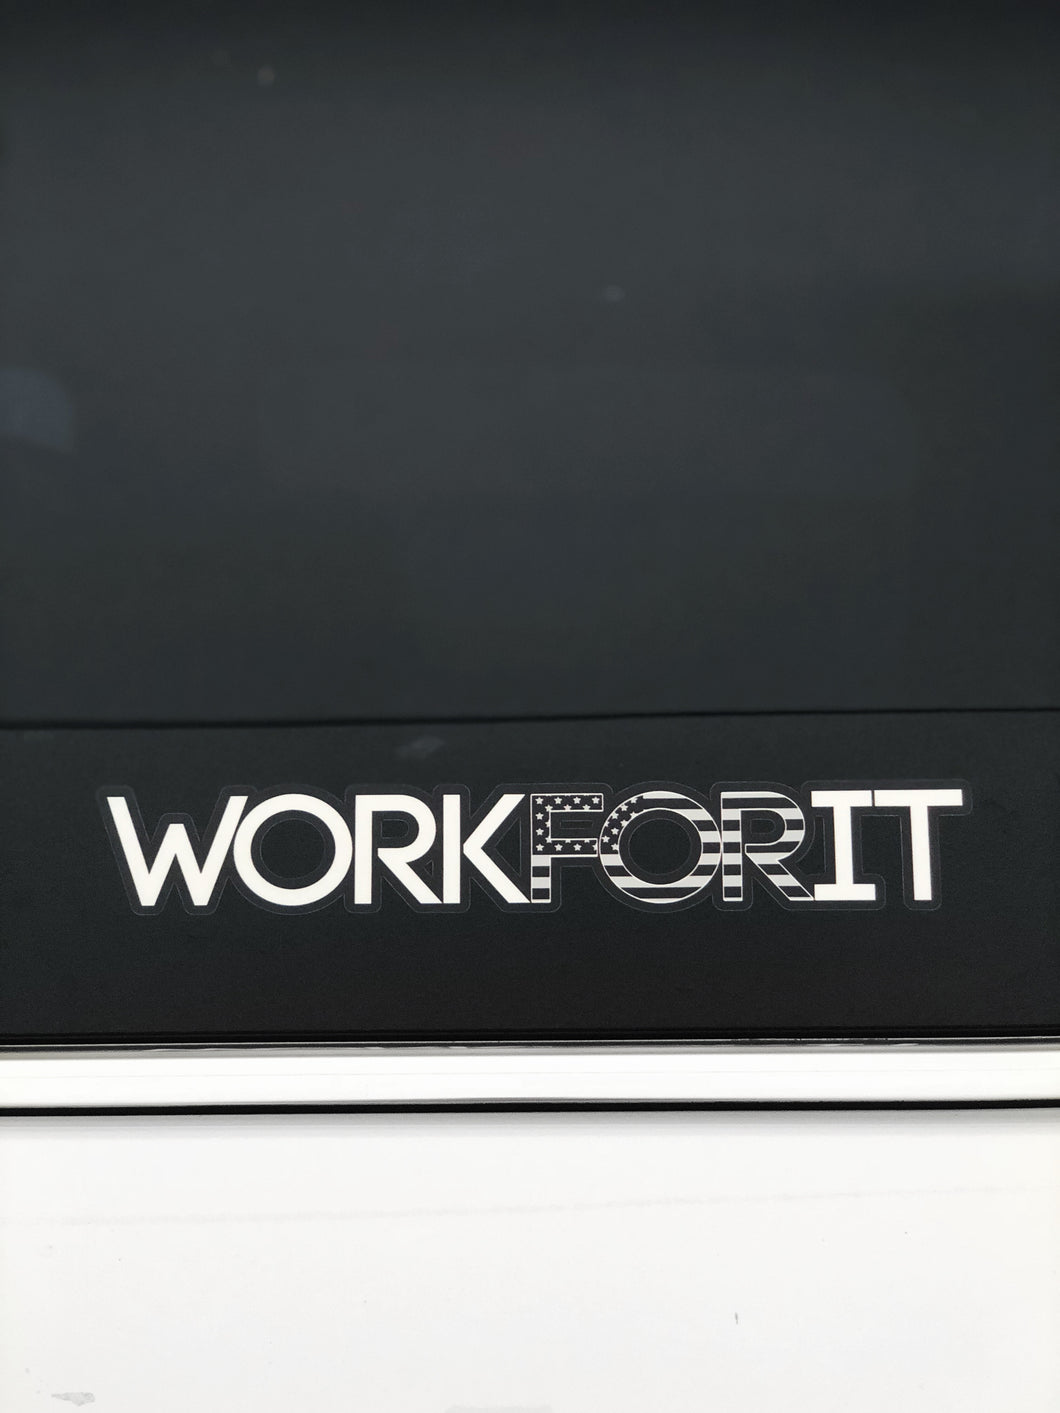 AMERICAN FLAG (BLACK/GREY) WORKFORIT Decal